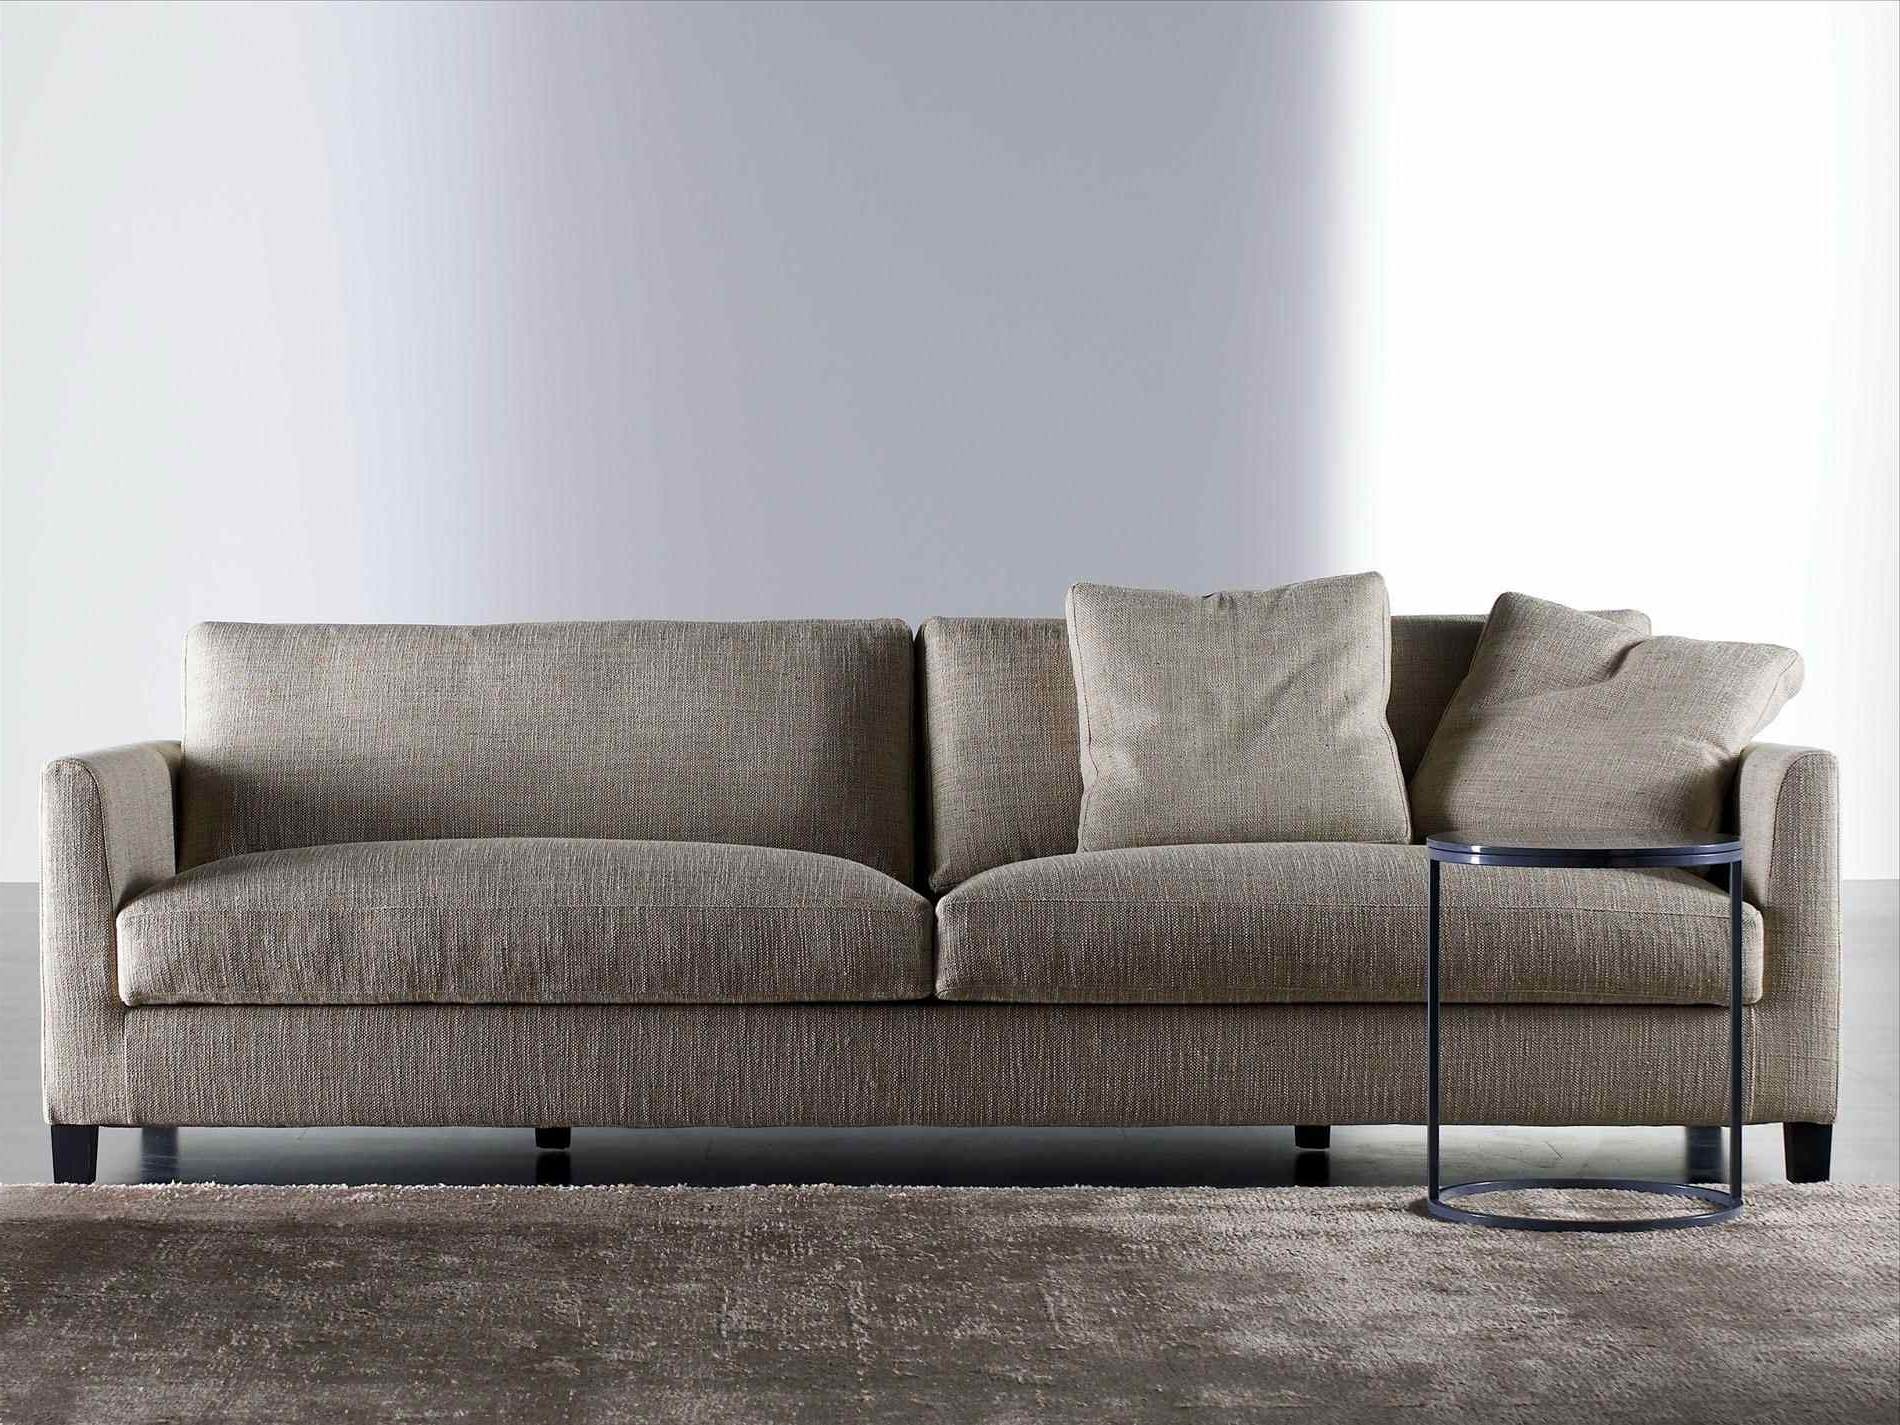 Sofa : Nonslip Faux Suede Pet Better Sofas With Removable Covers Intended For Most Popular Sofas With Removable Covers (View 8 of 20)